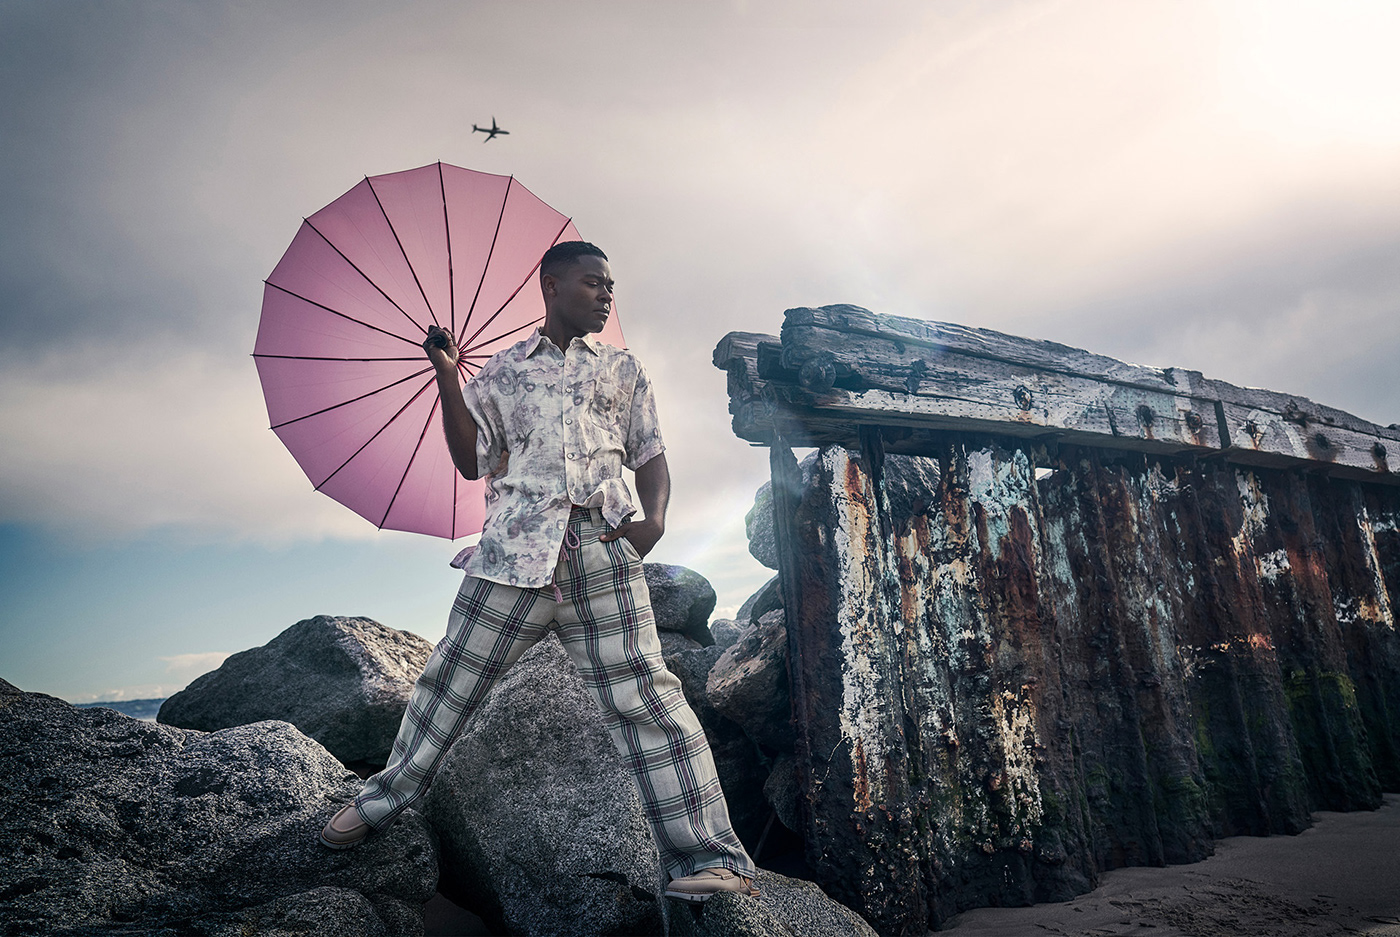 Celebrity David Oyelowo photographed with an pink umbrella at the sea for Alexa Magazine.